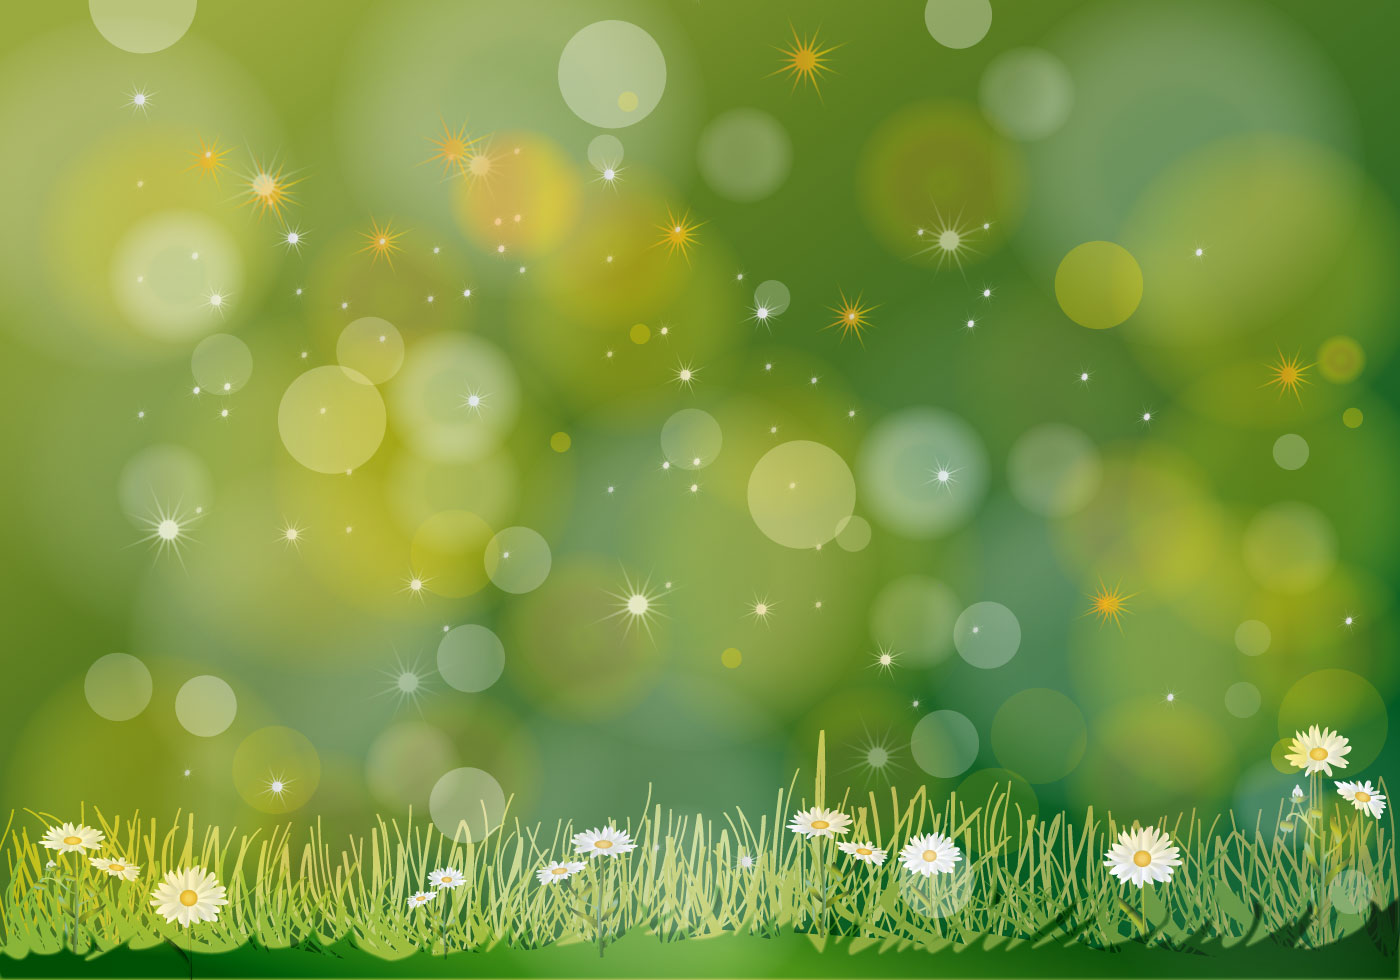 Green Flower Background Free Vector Art.